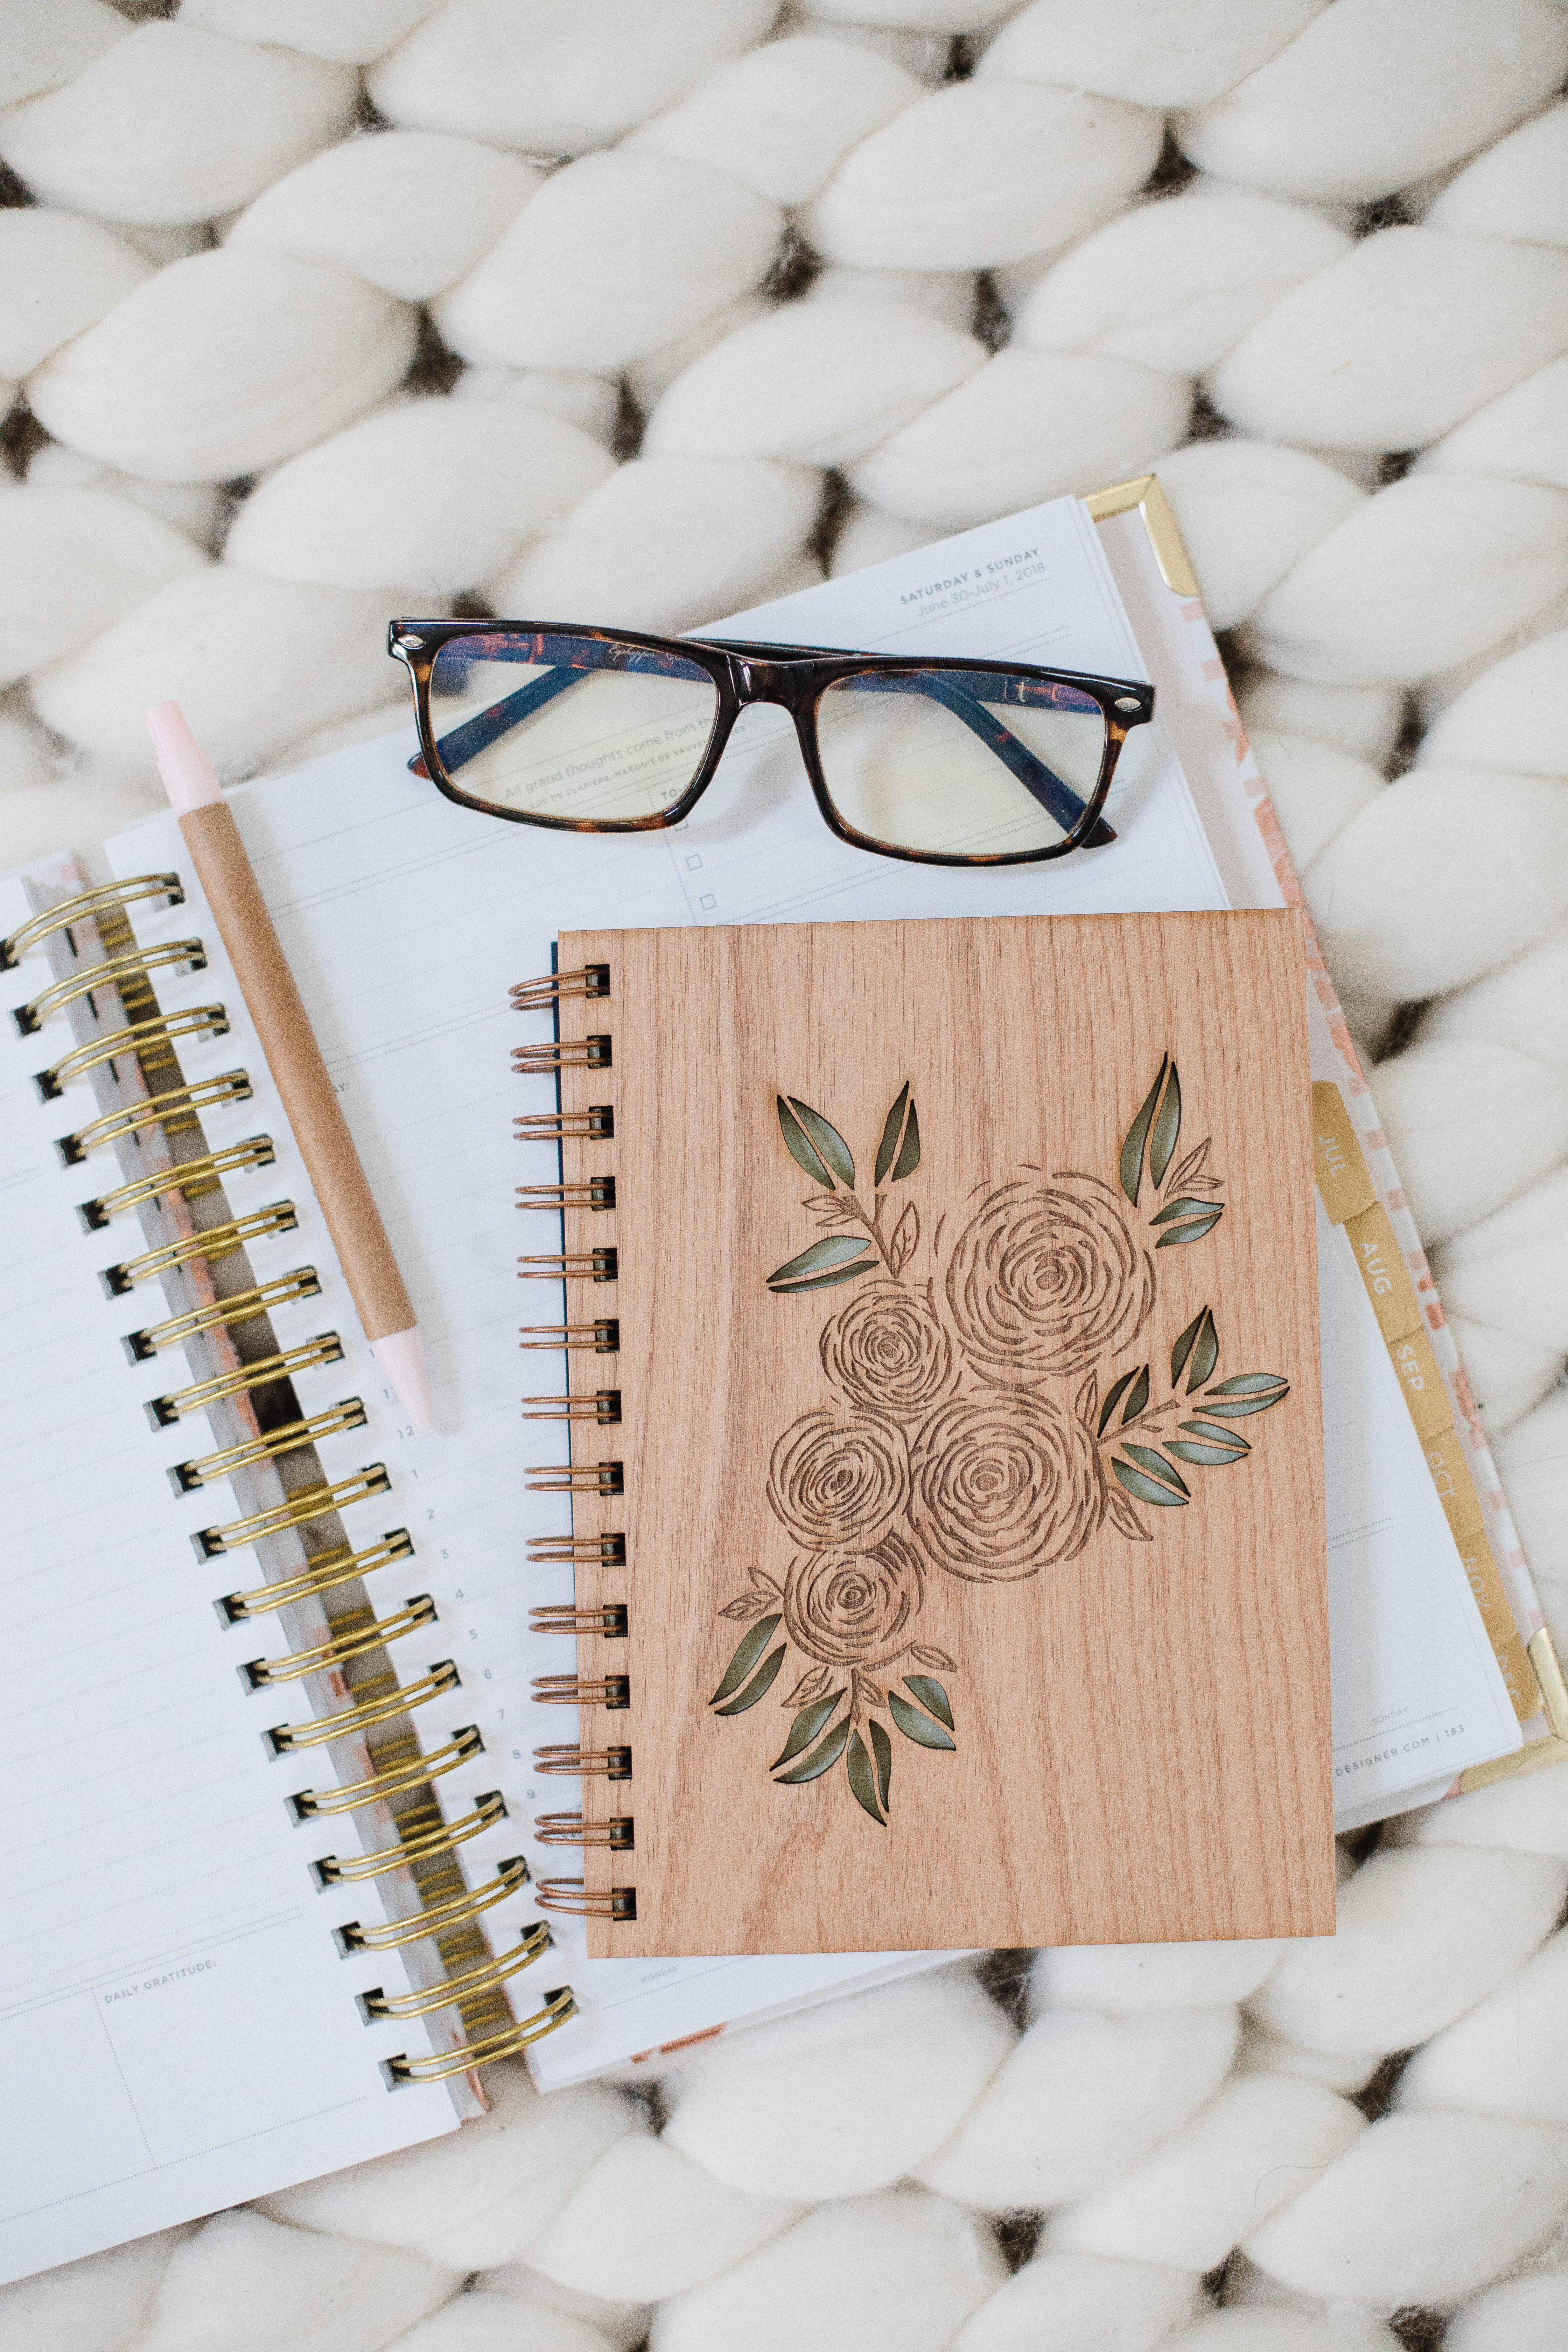 Life and style blogger Lauren McBride shares the Best Handmade Gifts from Amazon and more about Amazon Handmade's handcrafted and unique items.